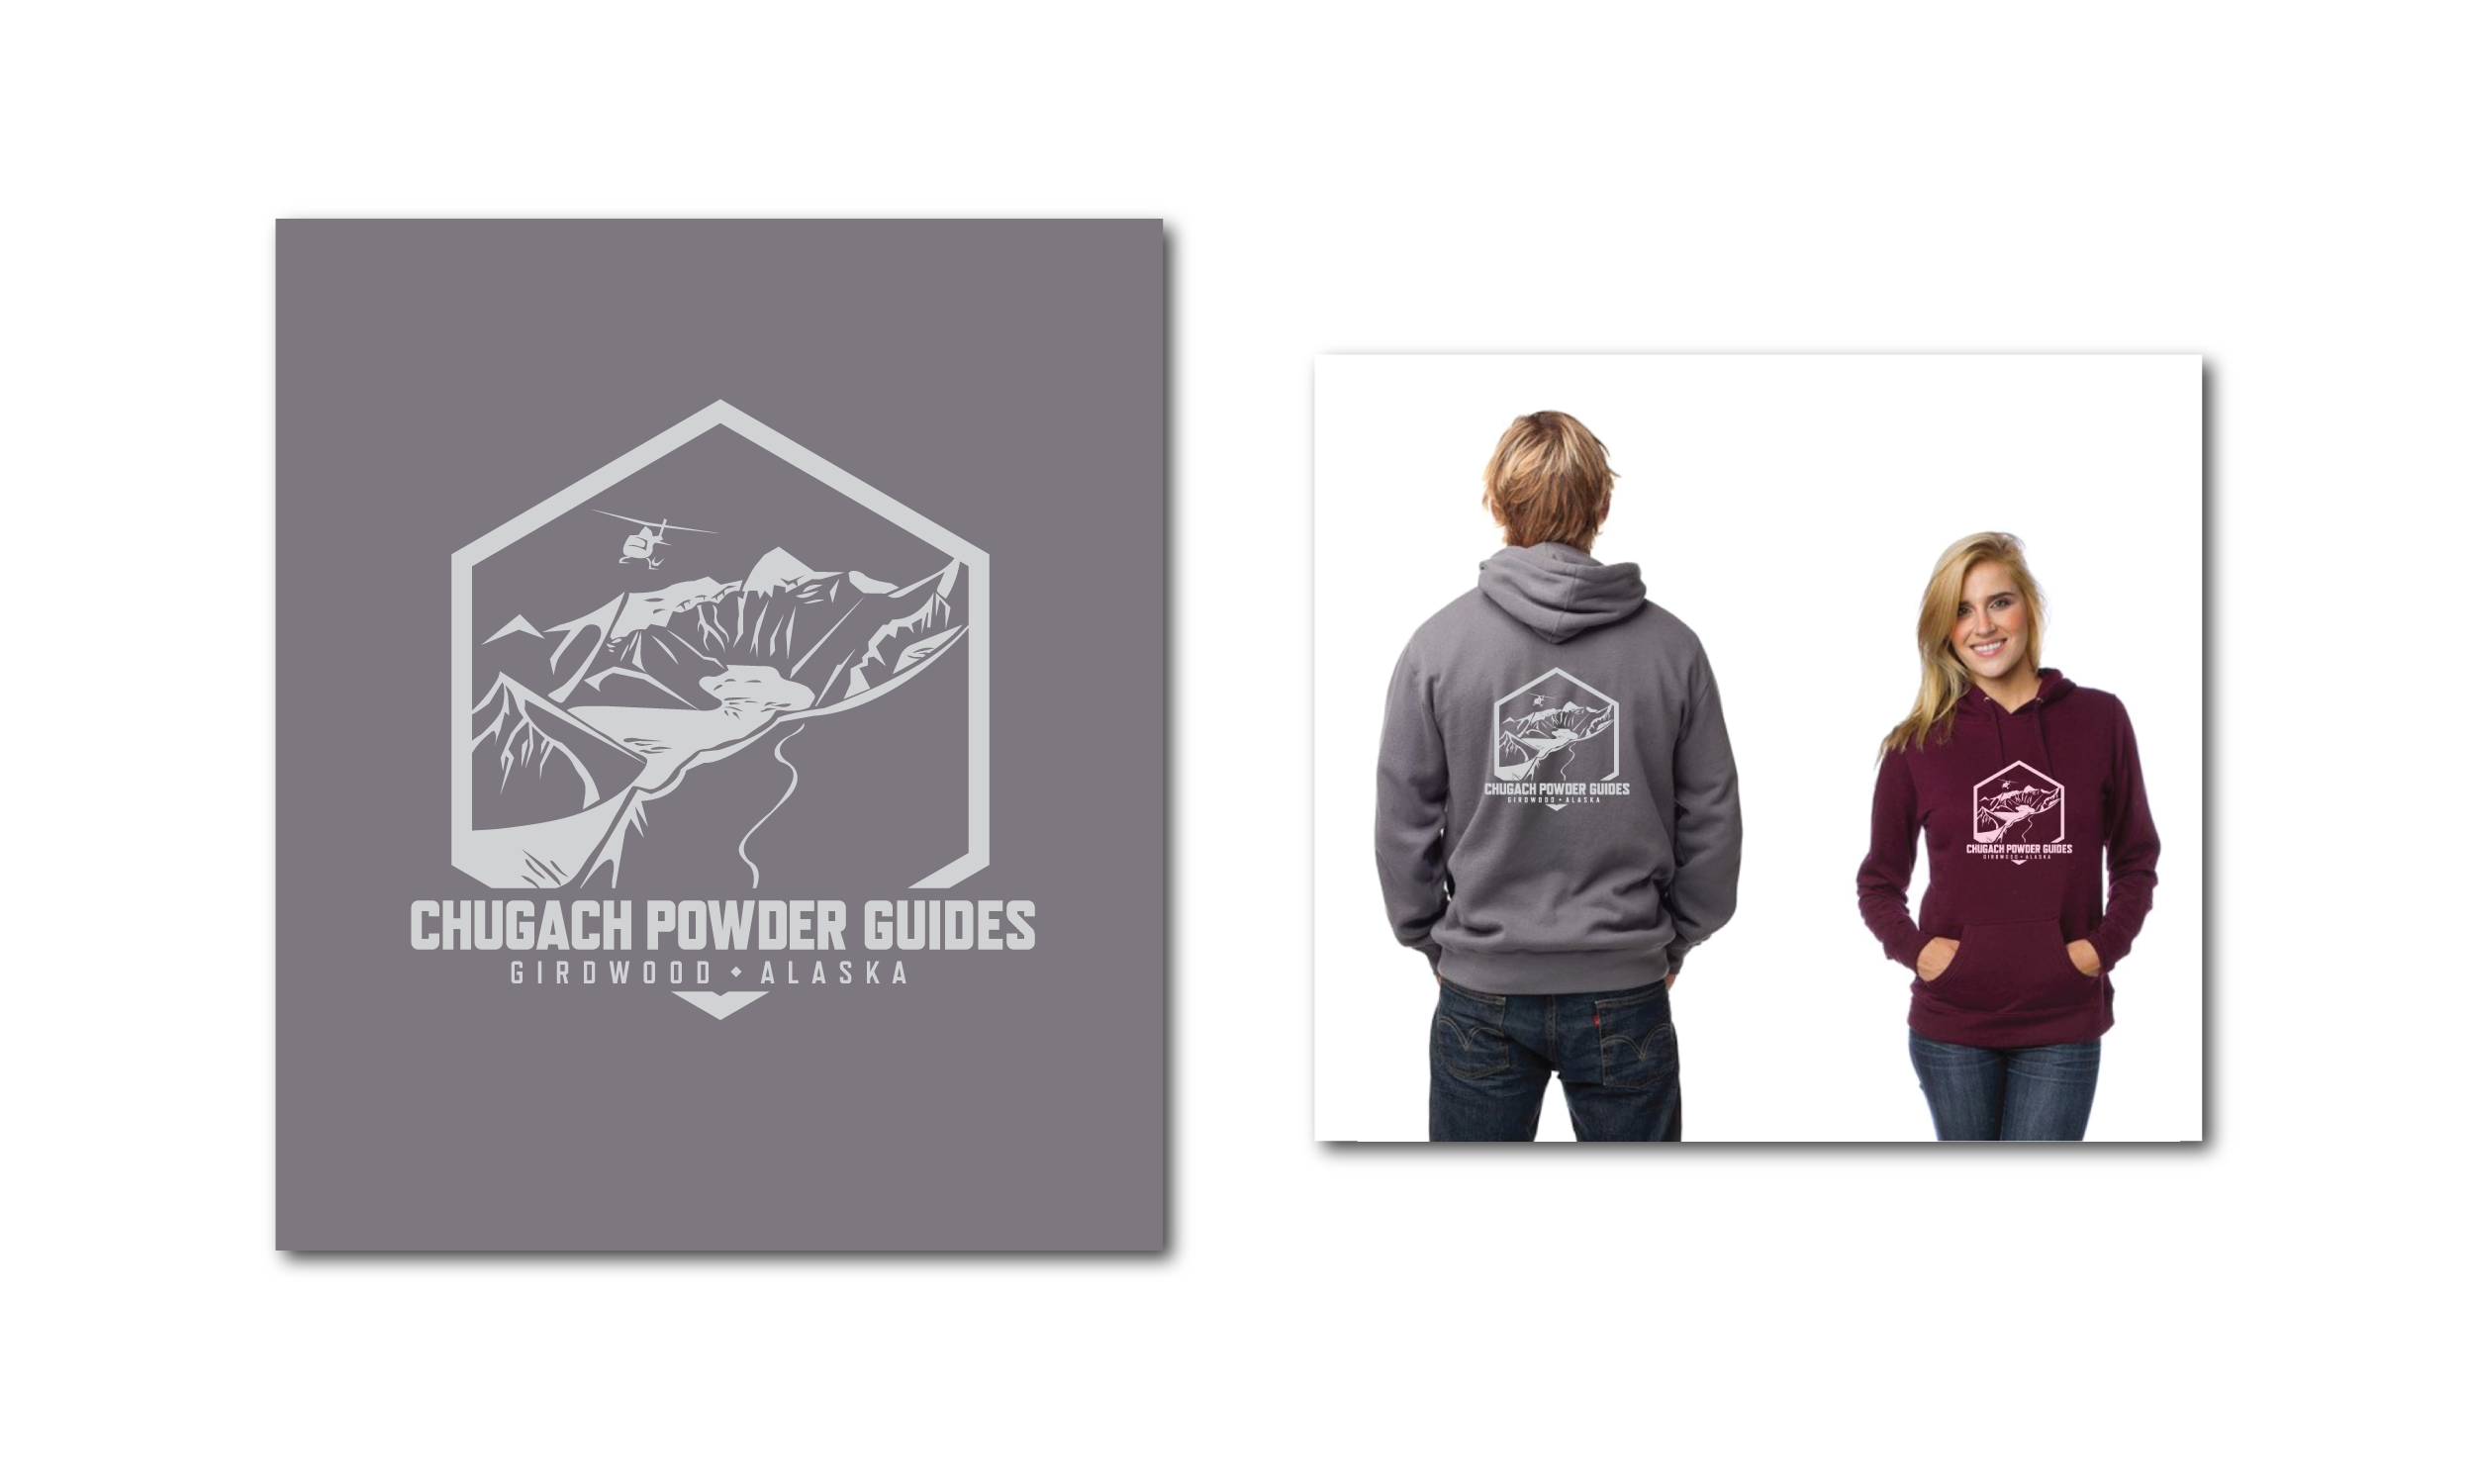 Chuagch Powder Guides